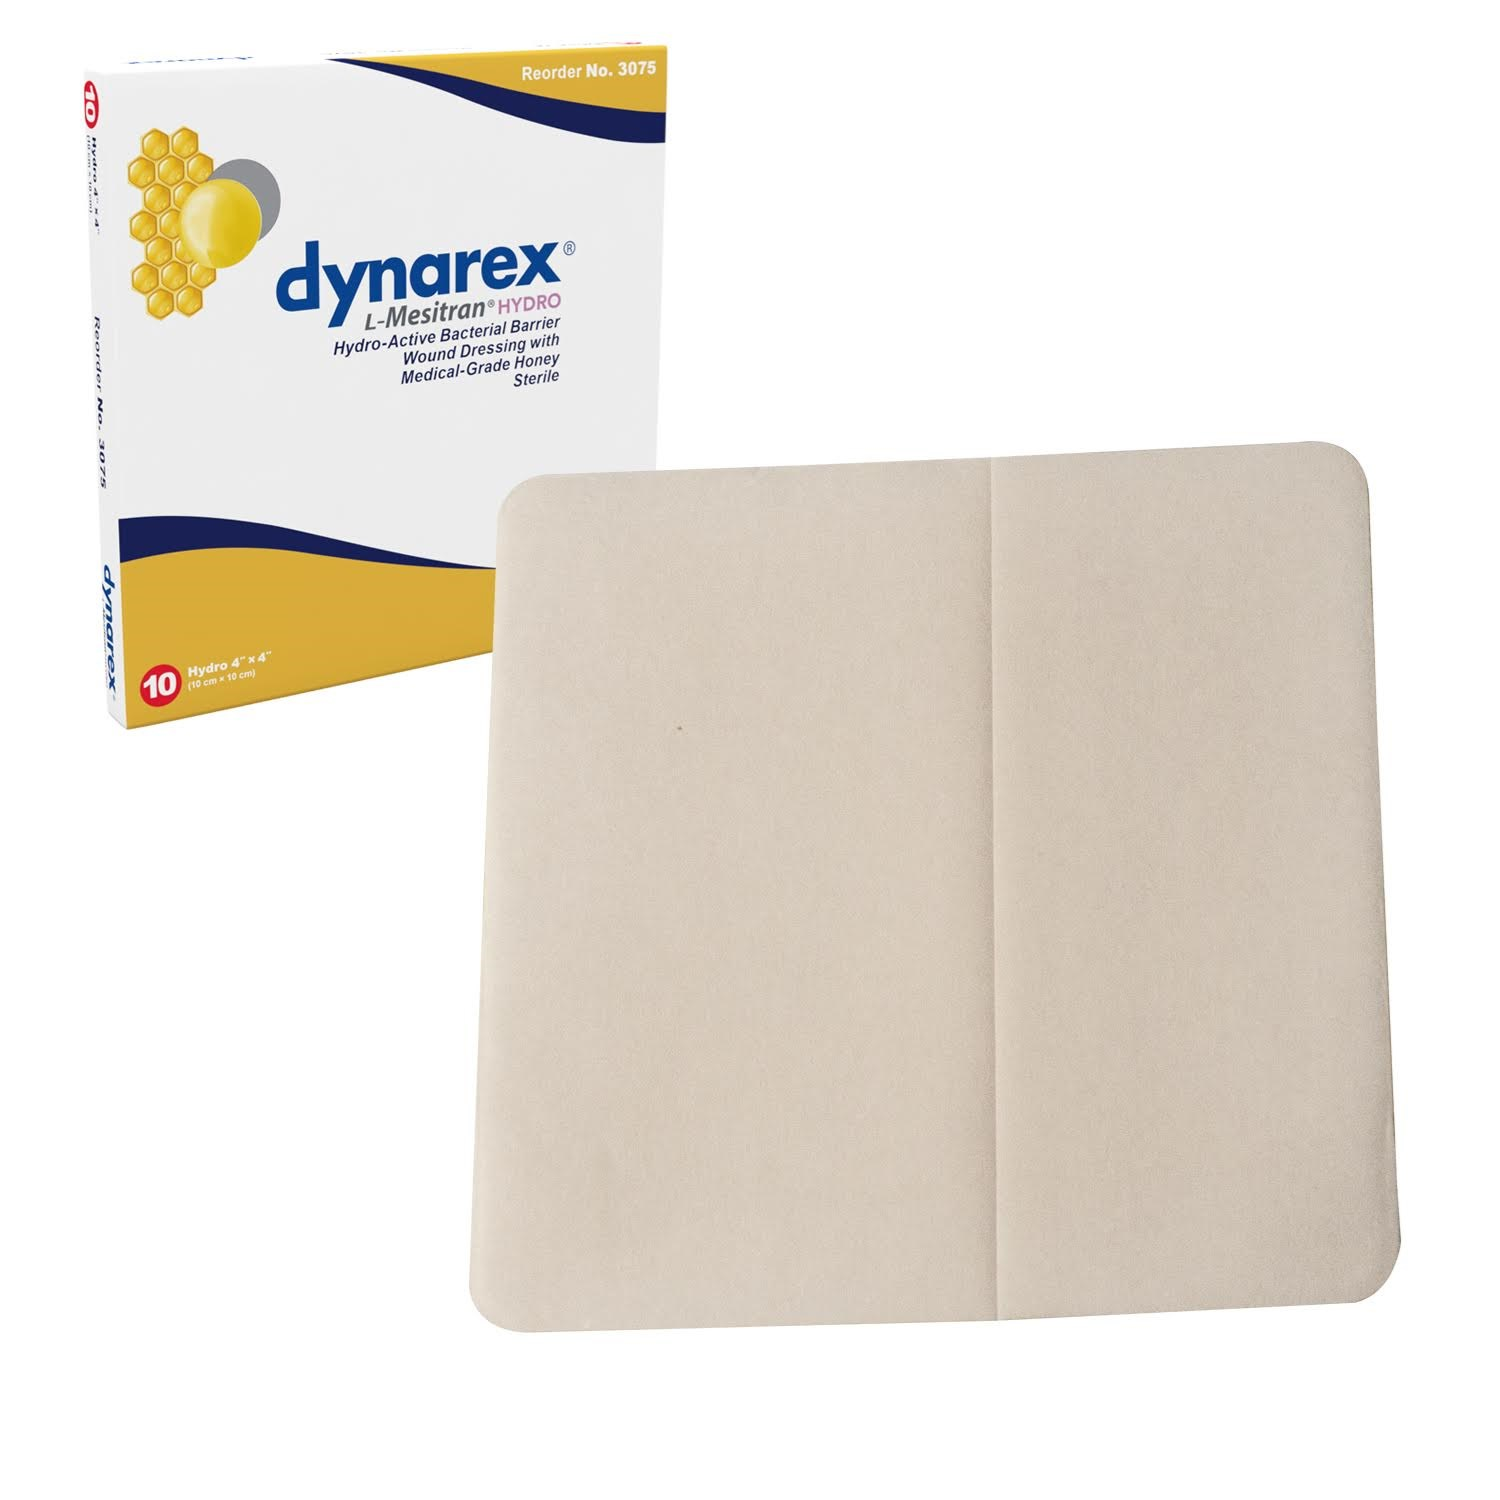 Honey-based wound care dressing launched